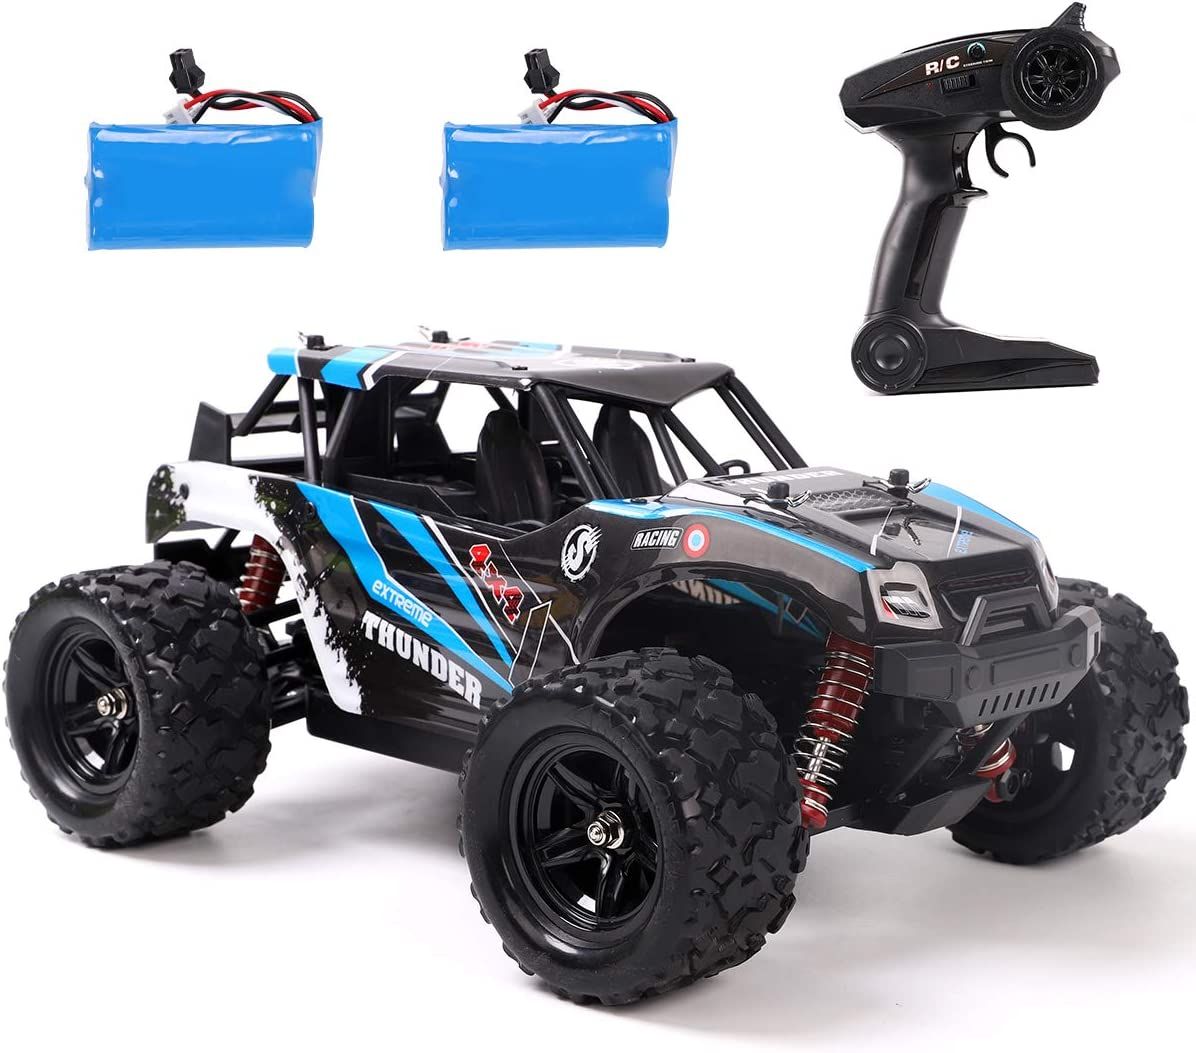 REMOKING Luxury goods RC Car 4WD 1 18 Scale Complete Free Shipping 2.4Ghz Speed 25MPH High for Radio